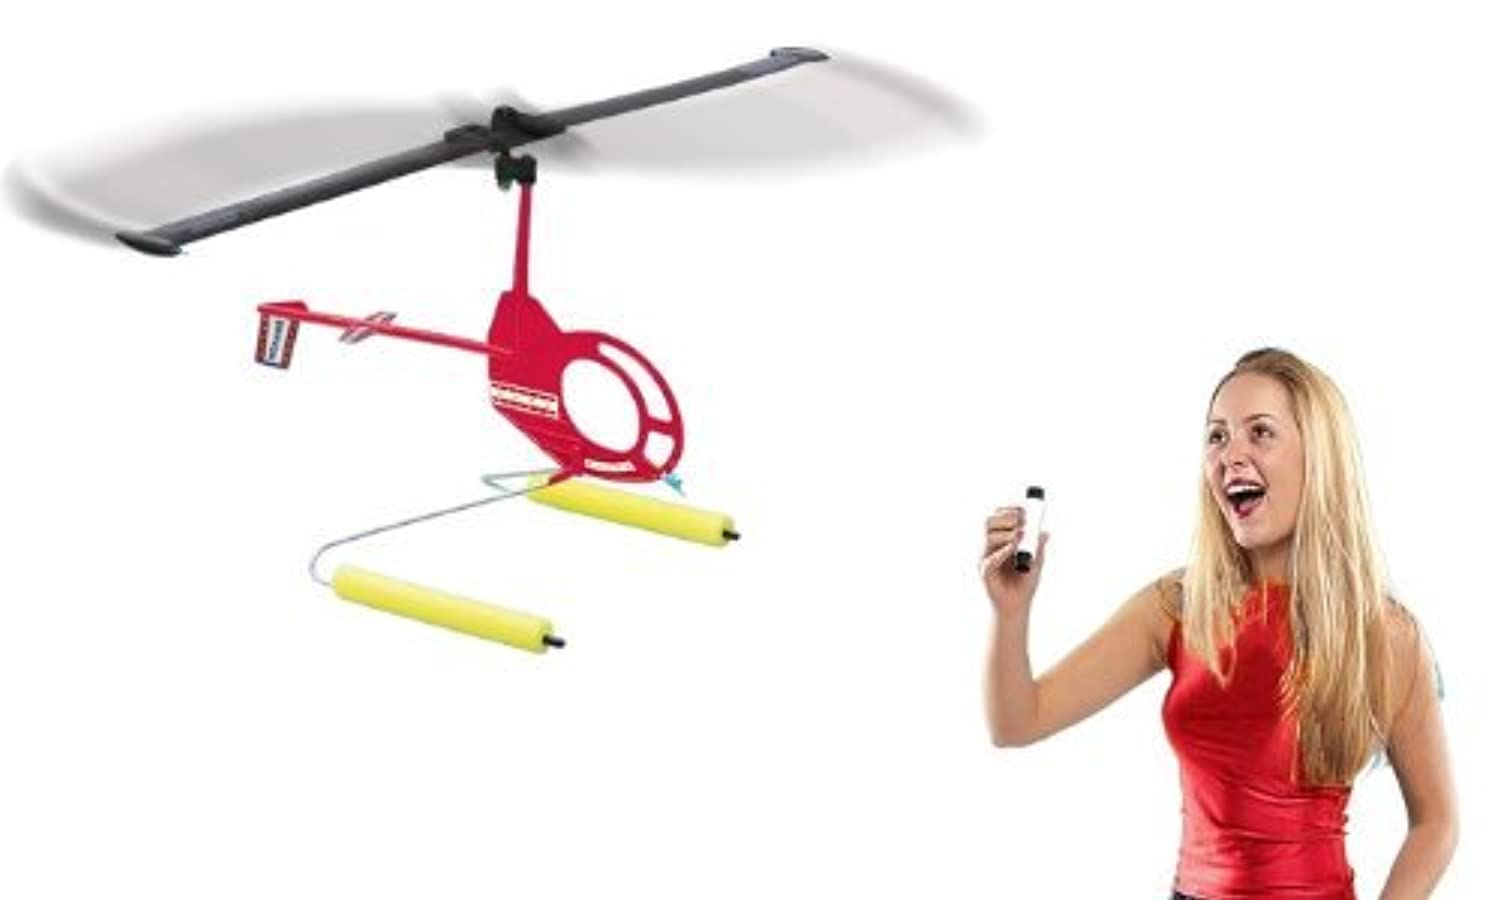 Wind Powered ToyヘリコプターKite gyrokite gyroglider GyrocopterモデルNot RCラジオコントロール、は電池、燃料なし、モーター、輪ゴムno、必要なのは風にこのCopter Power Up to 100フィート高。GREAT STOCKING STUFFER 。